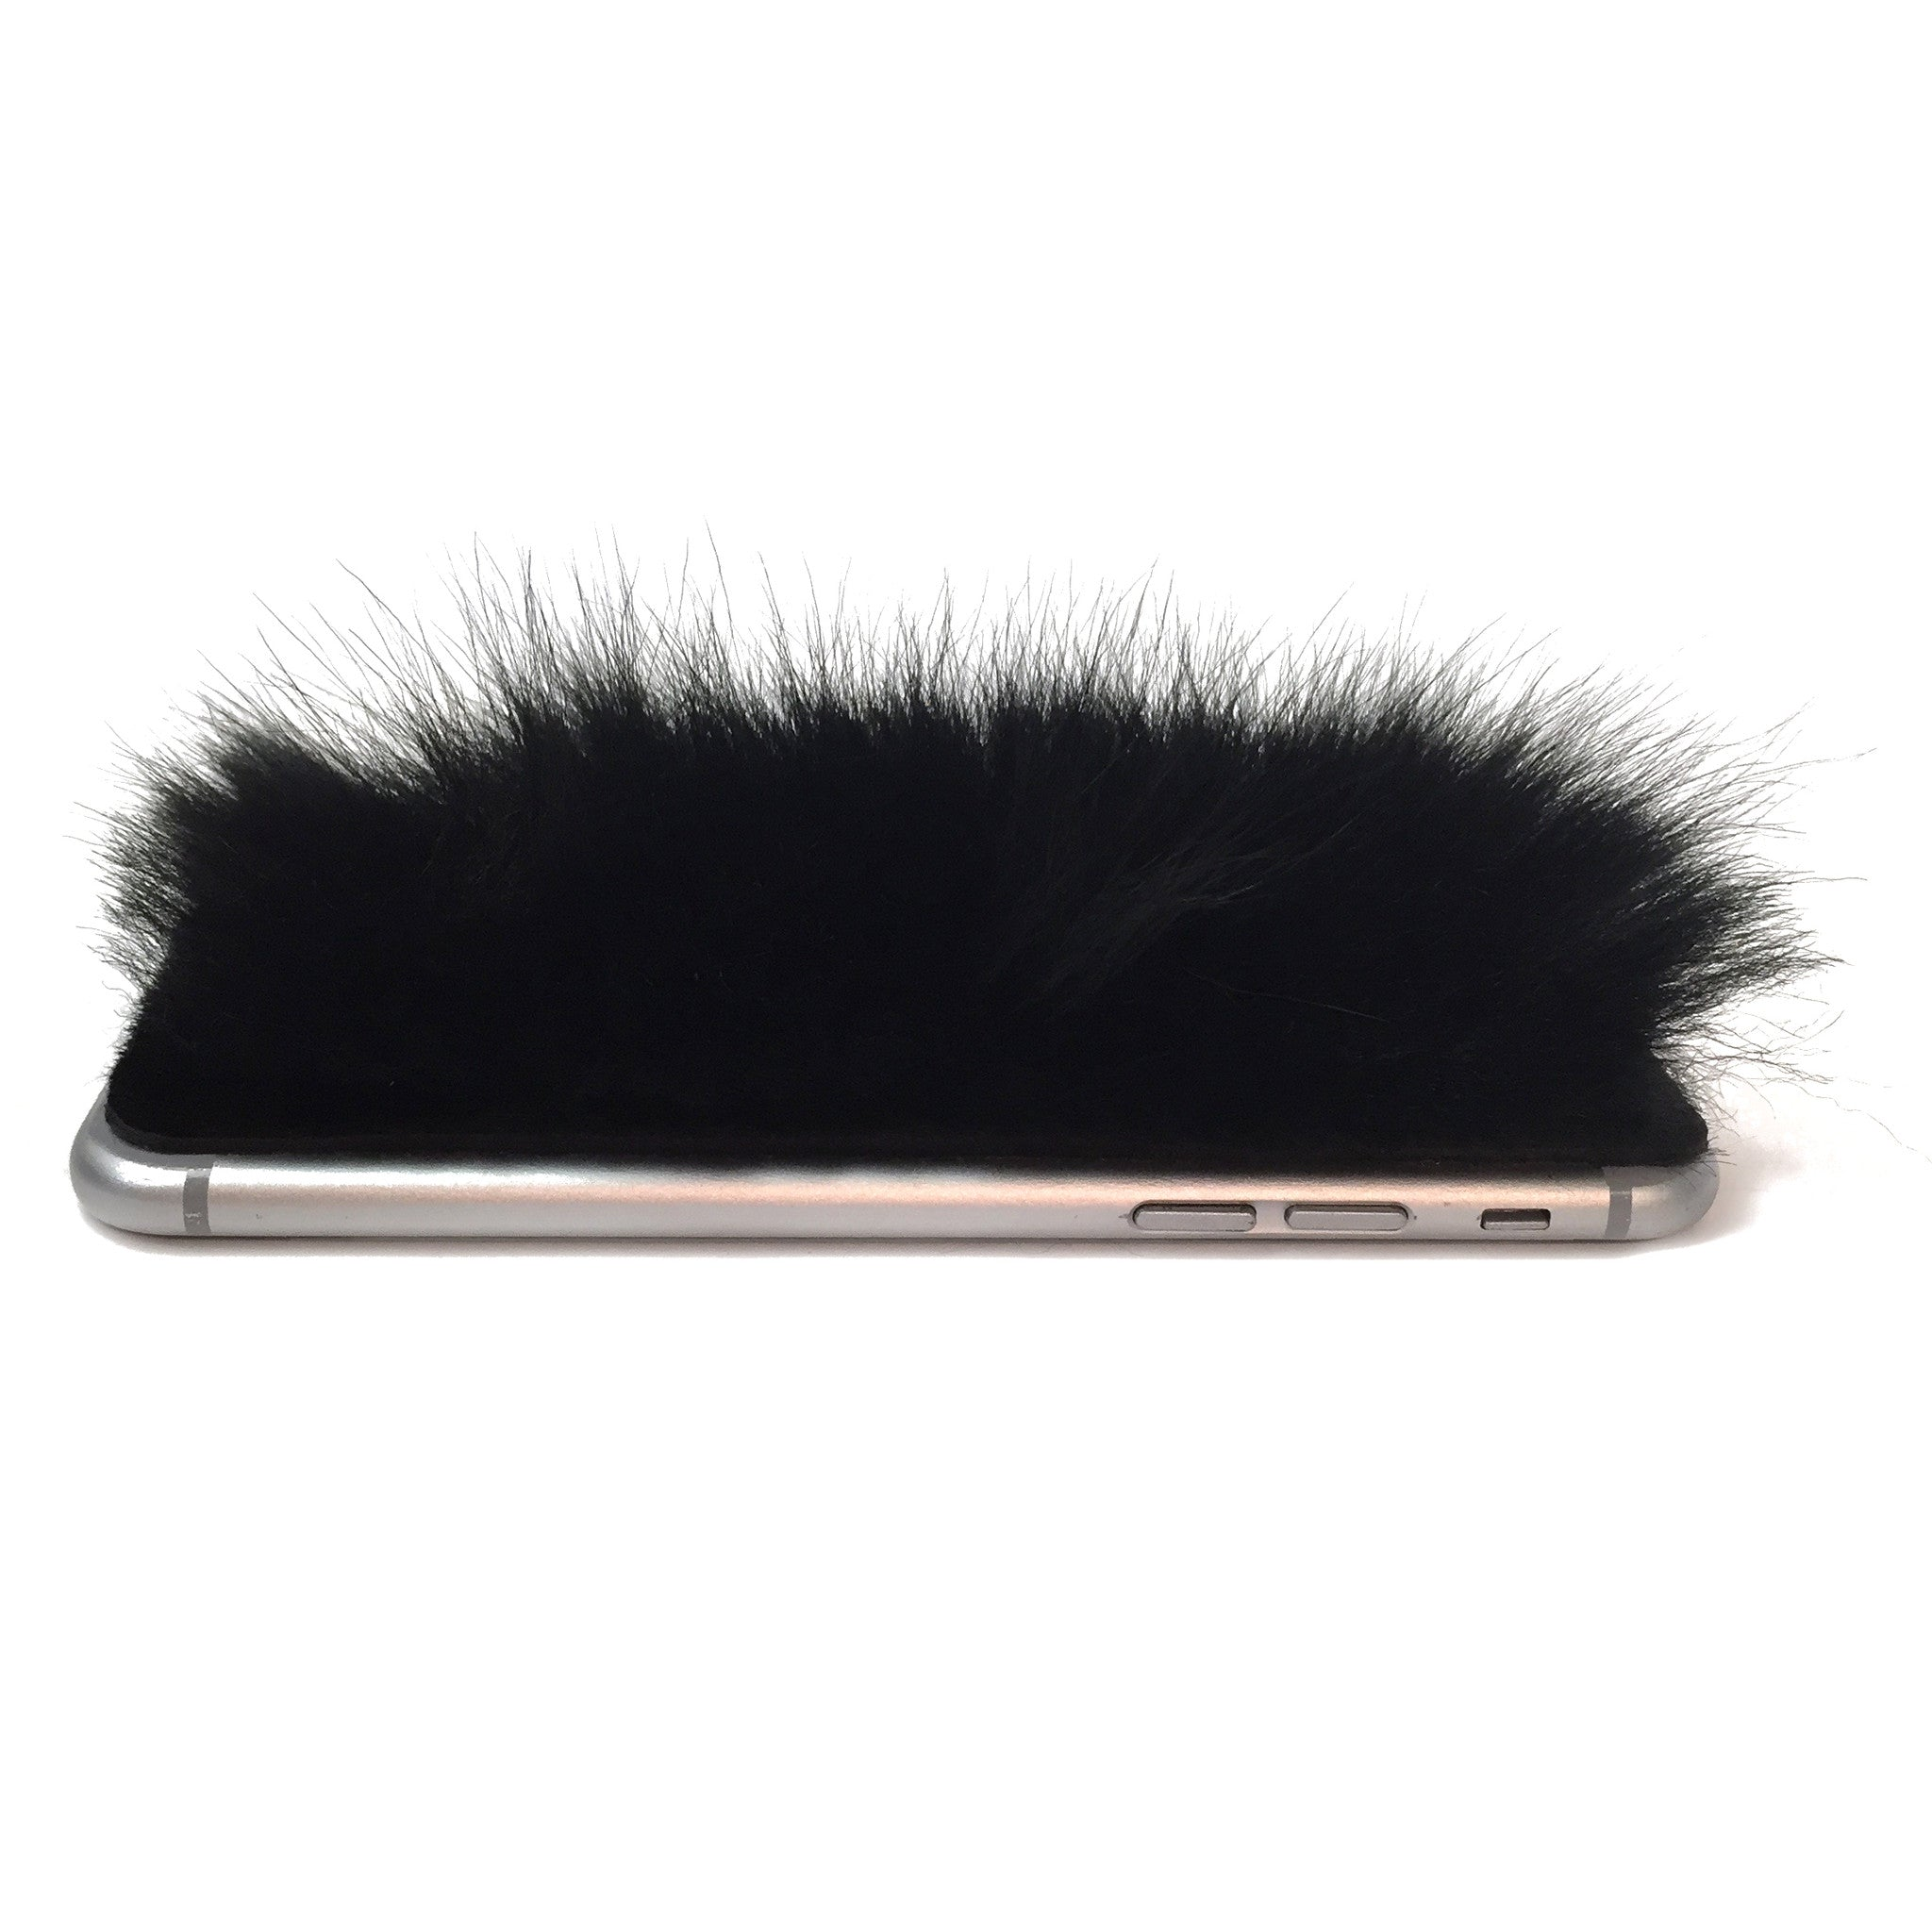 Black Sheep Fur iPhone 8 Leather Skin